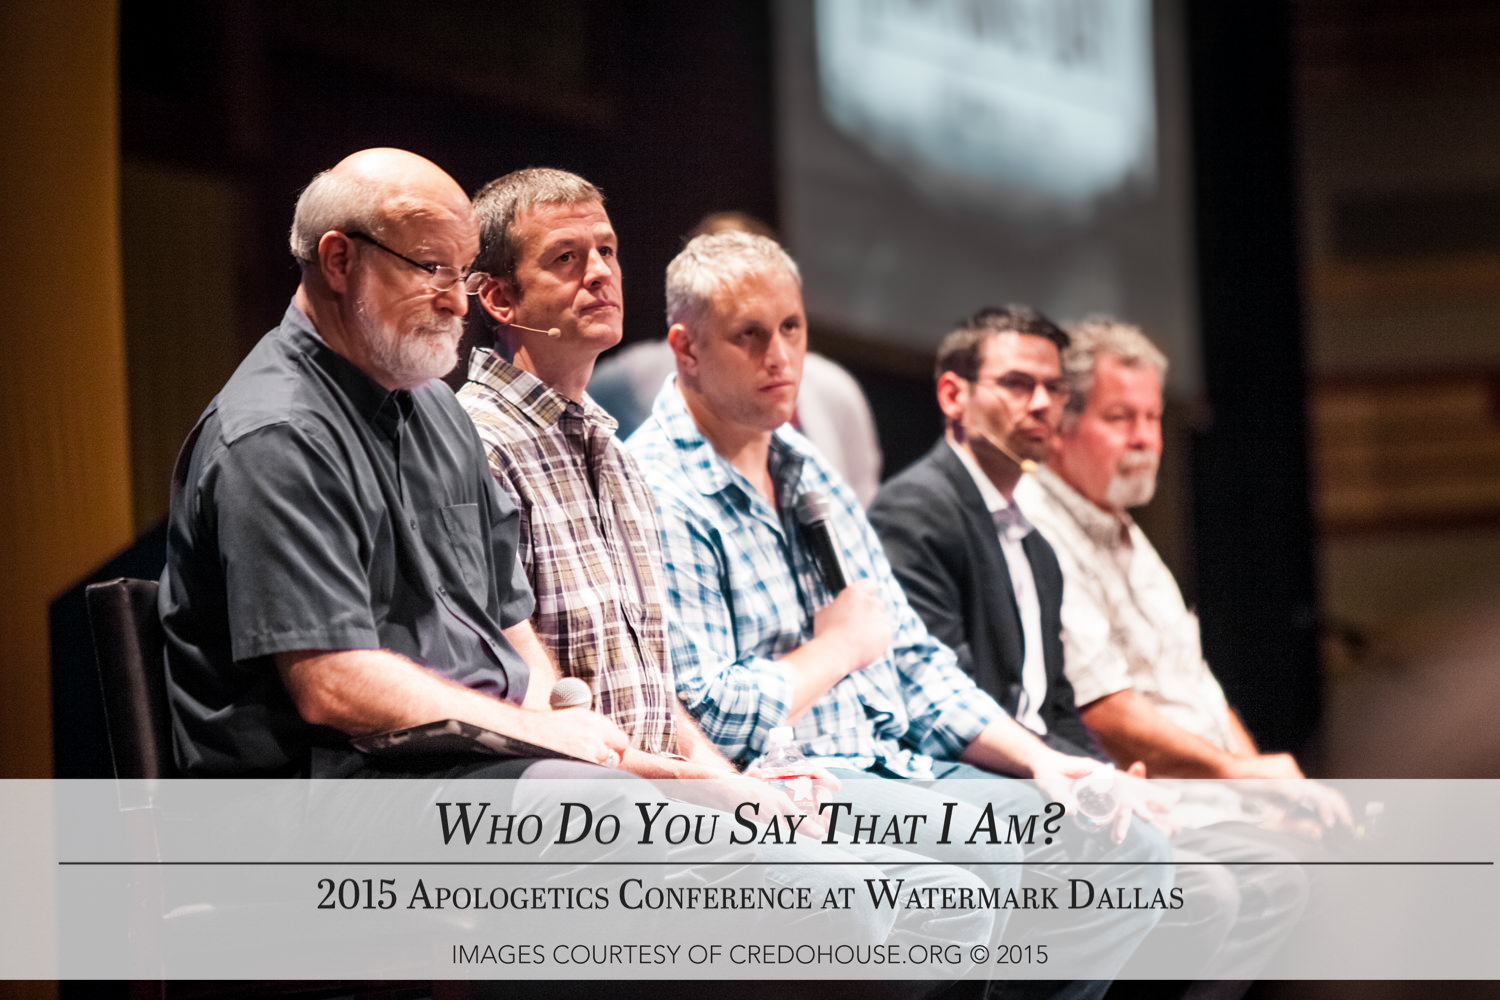 watermark-who-do-you-say-that-i-am-3418